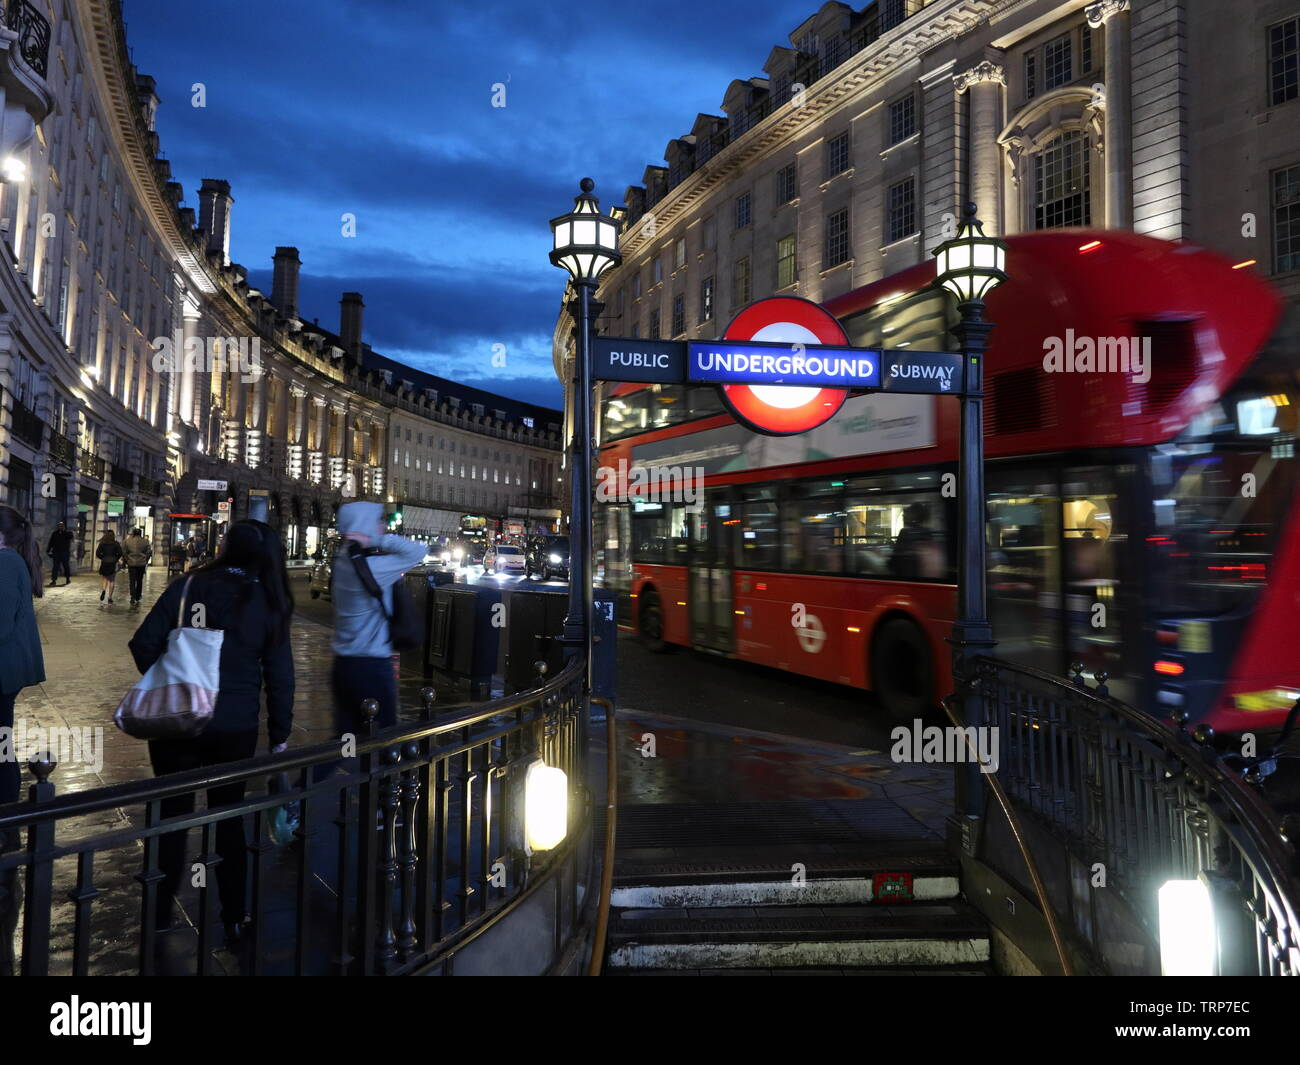 london-bus-passes-piccadilly-circus-station-entrance-on-regent-street-london-england-uk-TRP7EC.jpg